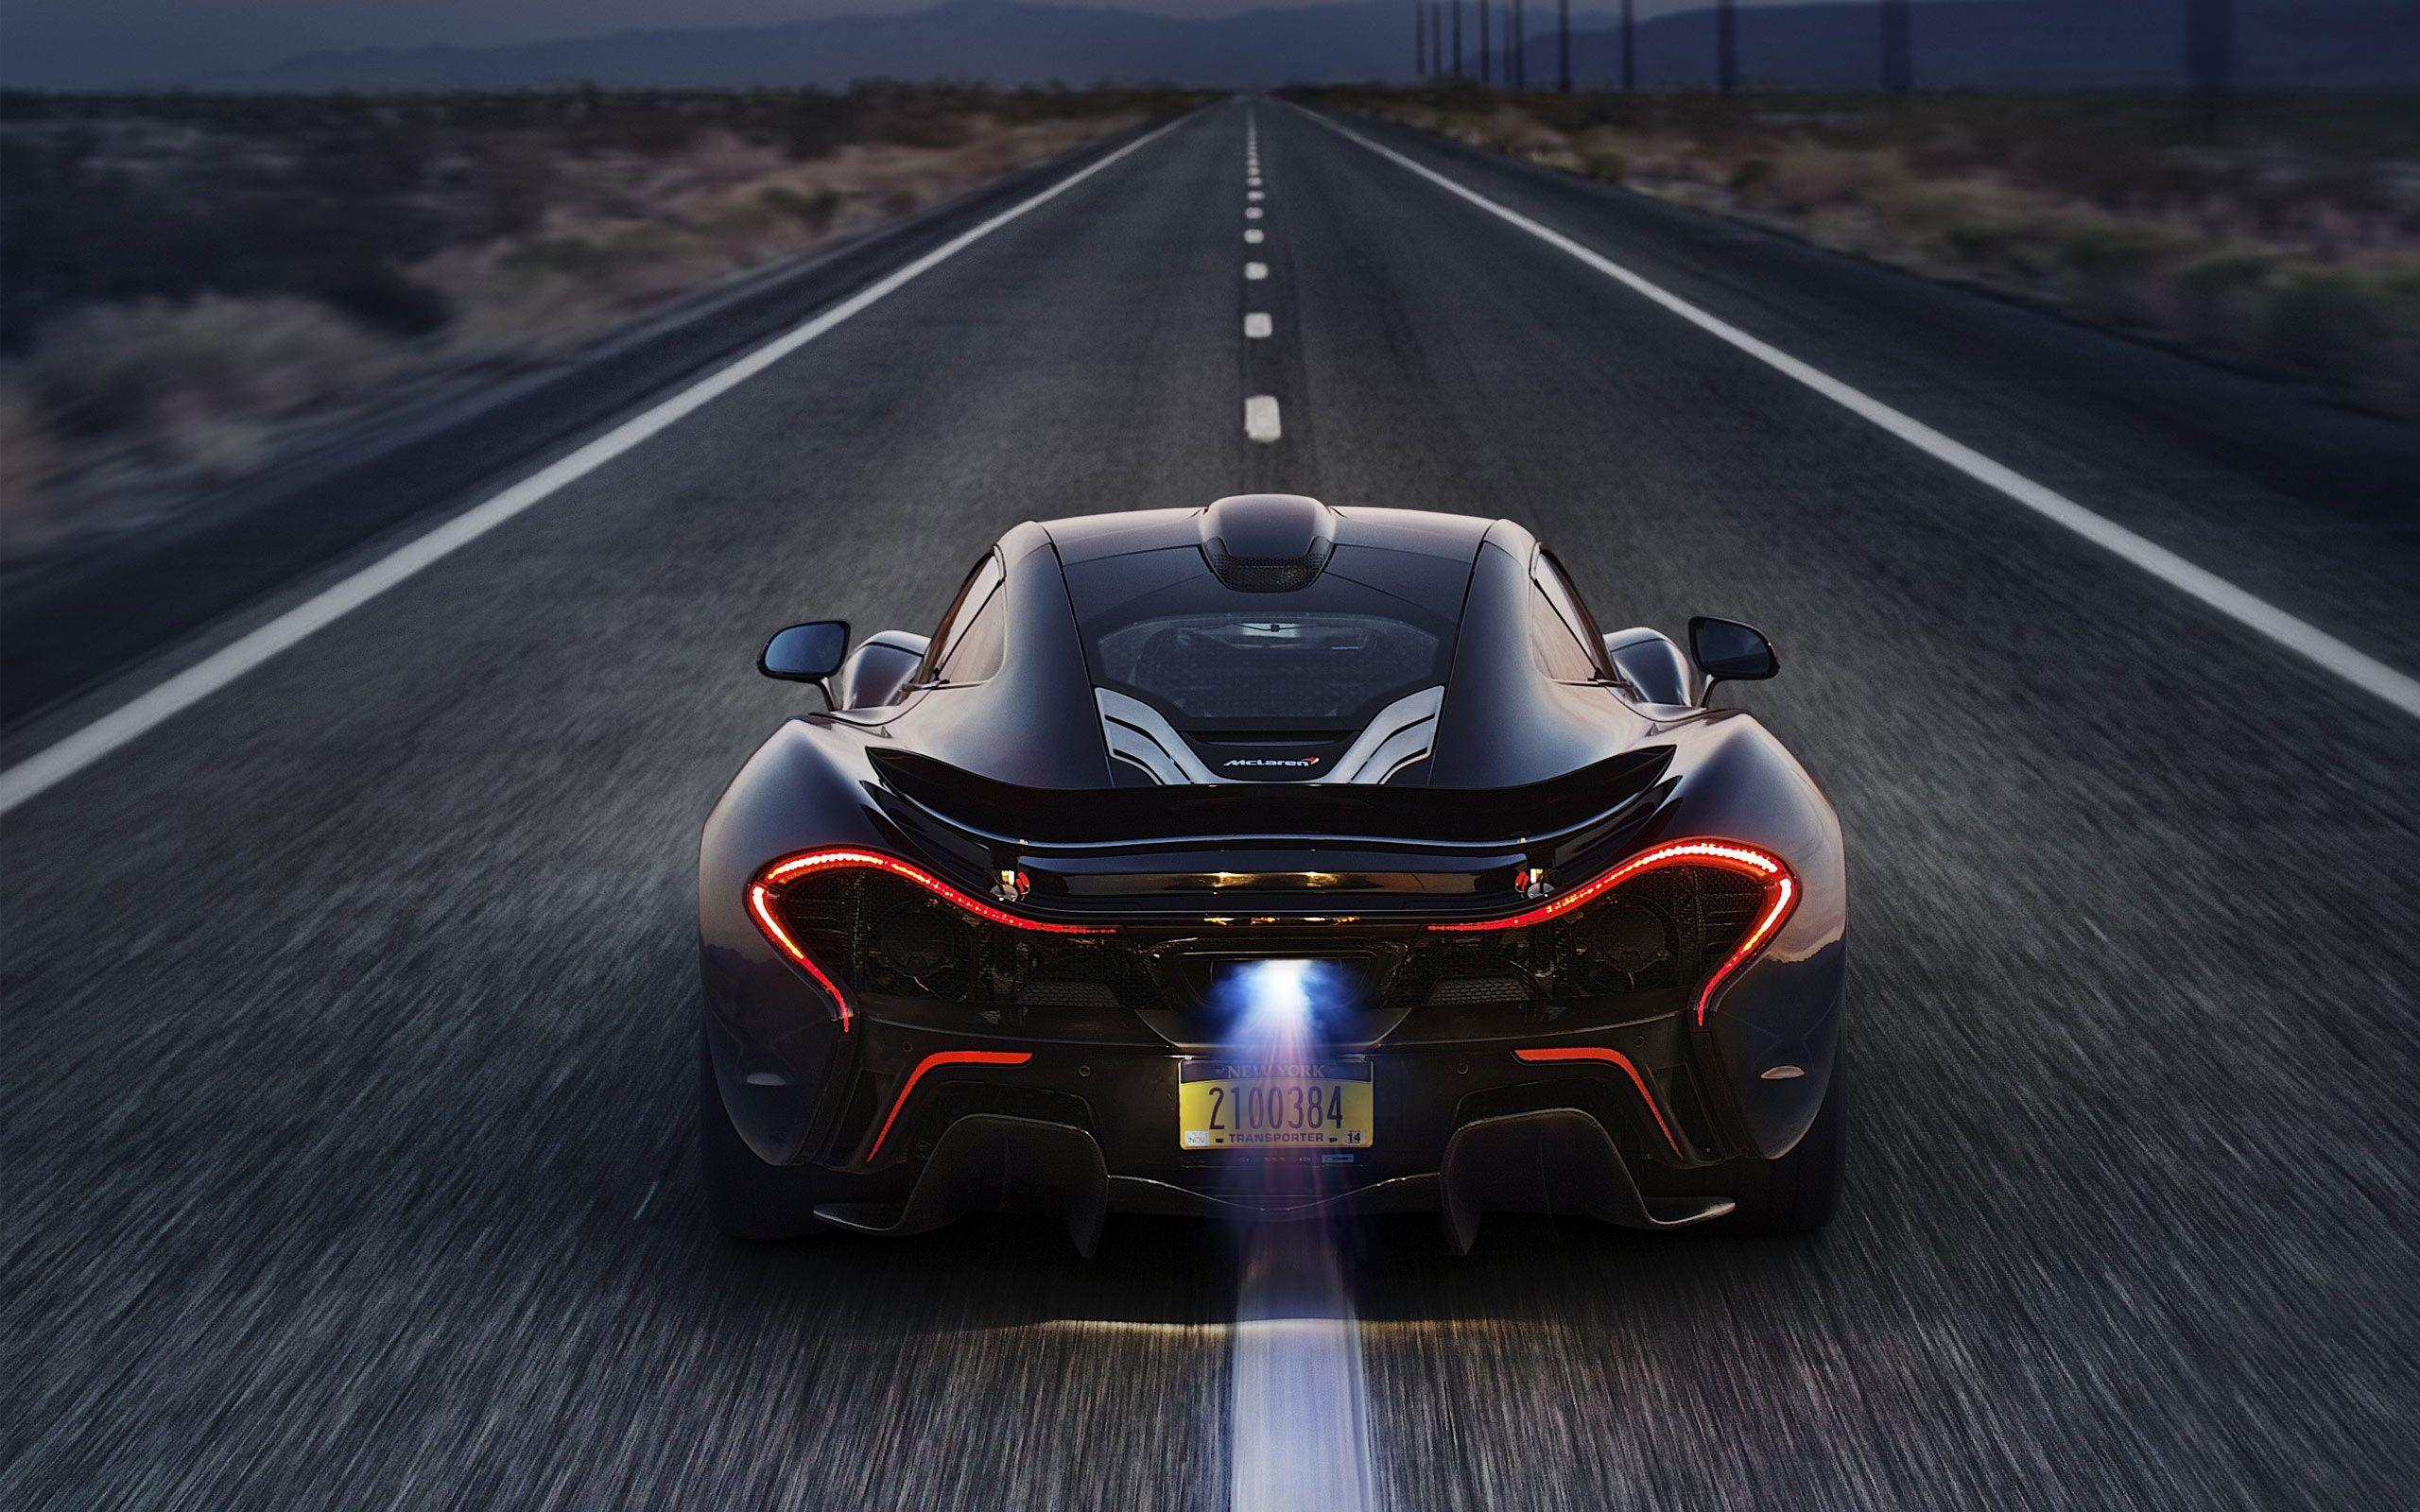 Mclaren P1 Wallpaper Hd >> Mclaren P1 Wallpapers Wallpaper Cave